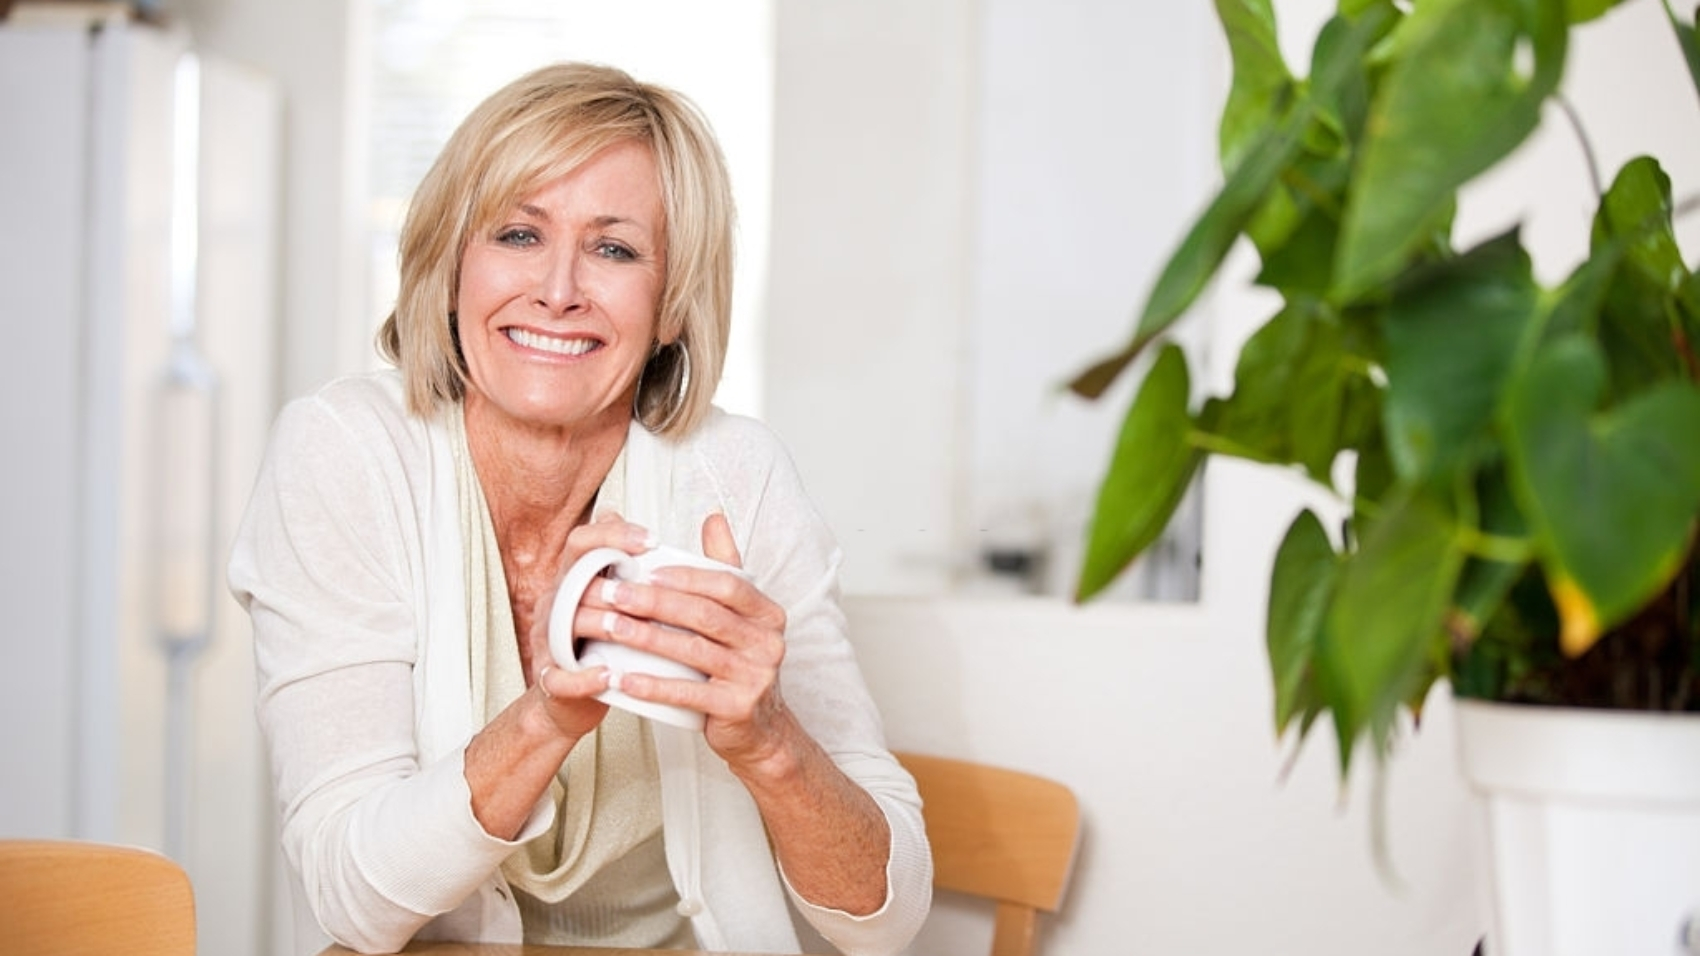 Happy, middle aged woman drinking hot tea in her white kitchen. She is smiling at the camera. Woman is in her 50s and has both hands around the coffee mug. She is very genuine and warm. Green plan in of the right of the image.